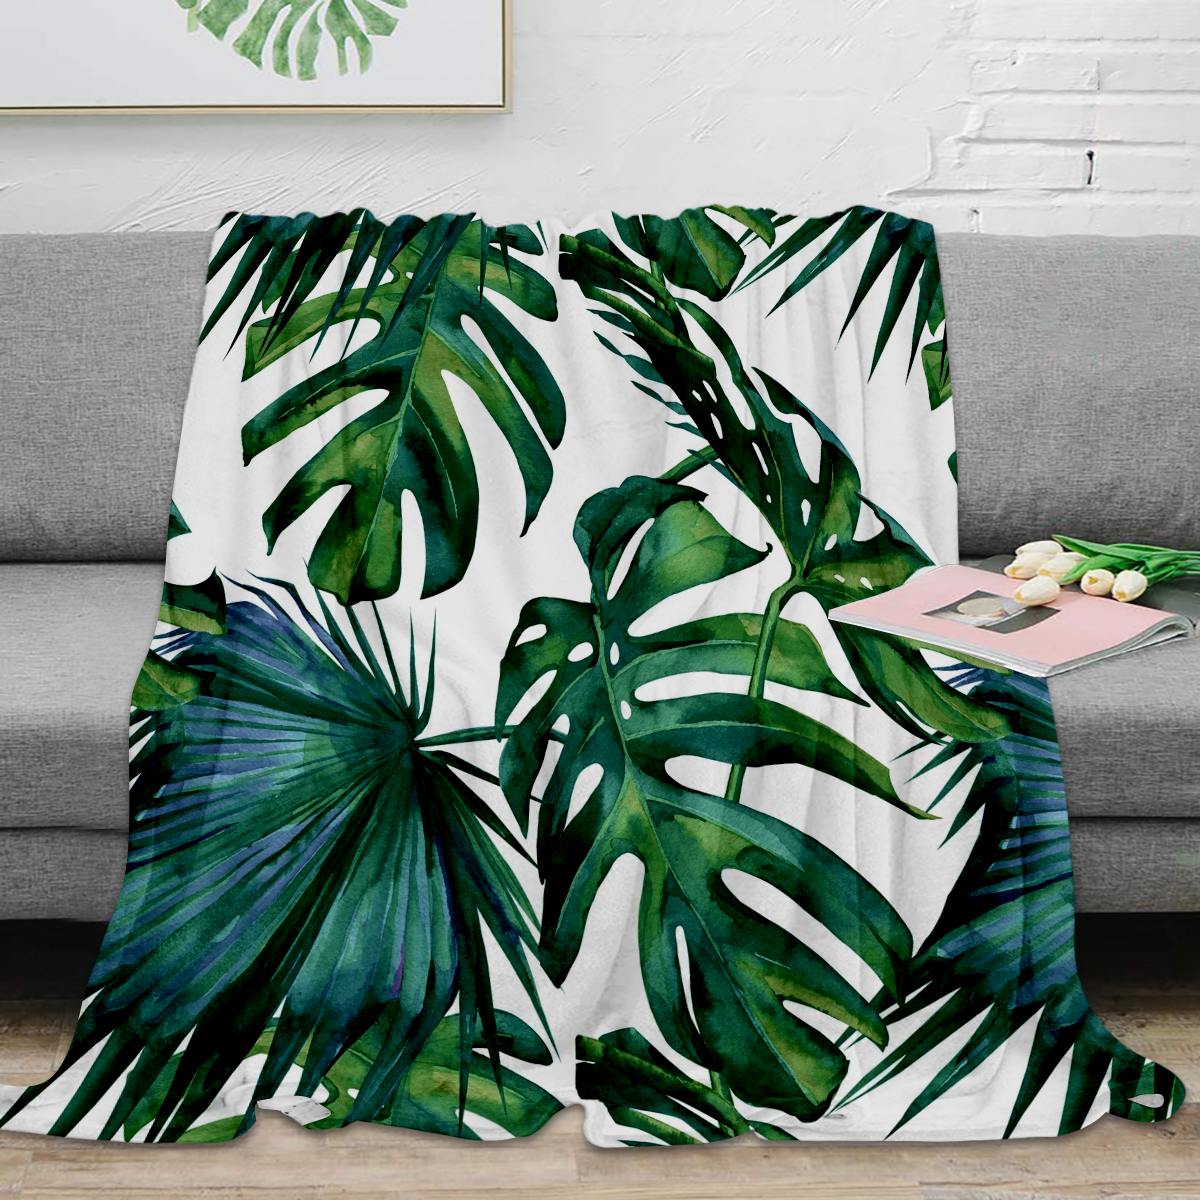 Classic Palm Leaves Tropical Jungle Green Throw Blanket Warm Flannel Blanket Flannel Blanket Blankets For Beds